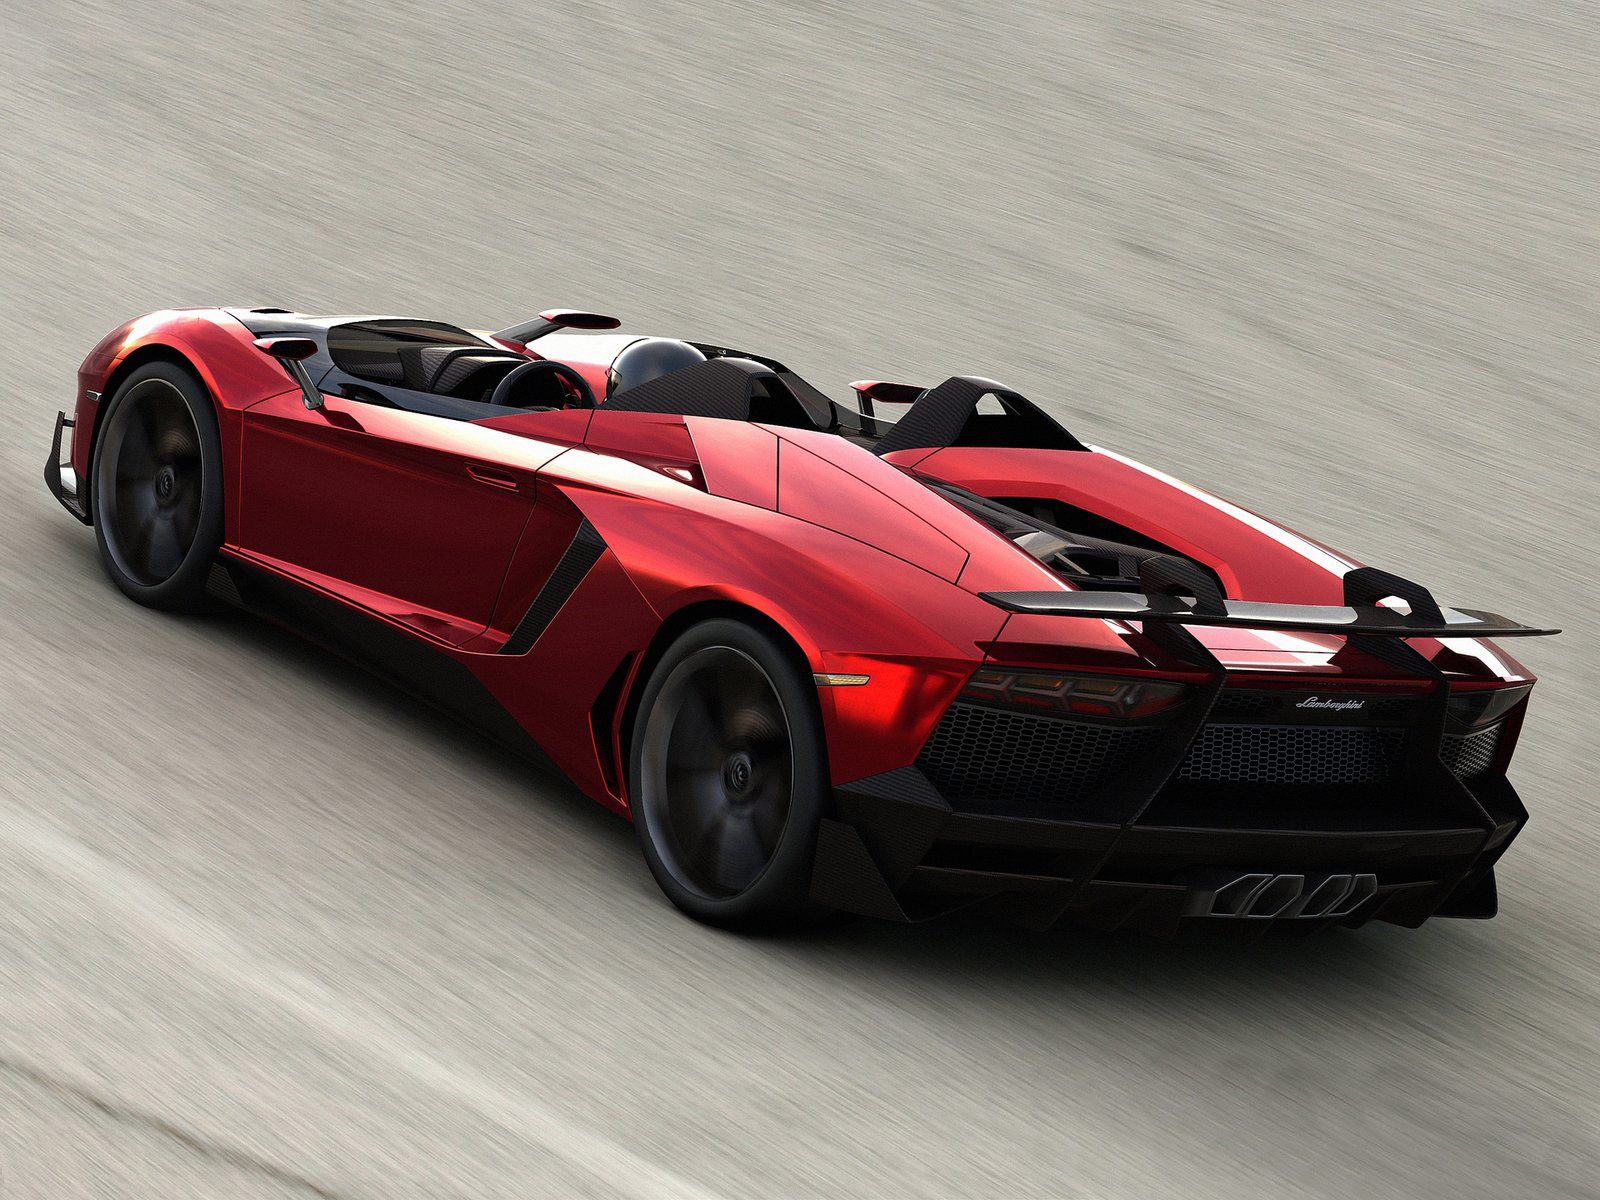 Foto Mobil Sport Lamborghini Aventador J Concept 2012 HD Wallpapers Download free images and photos [musssic.tk]